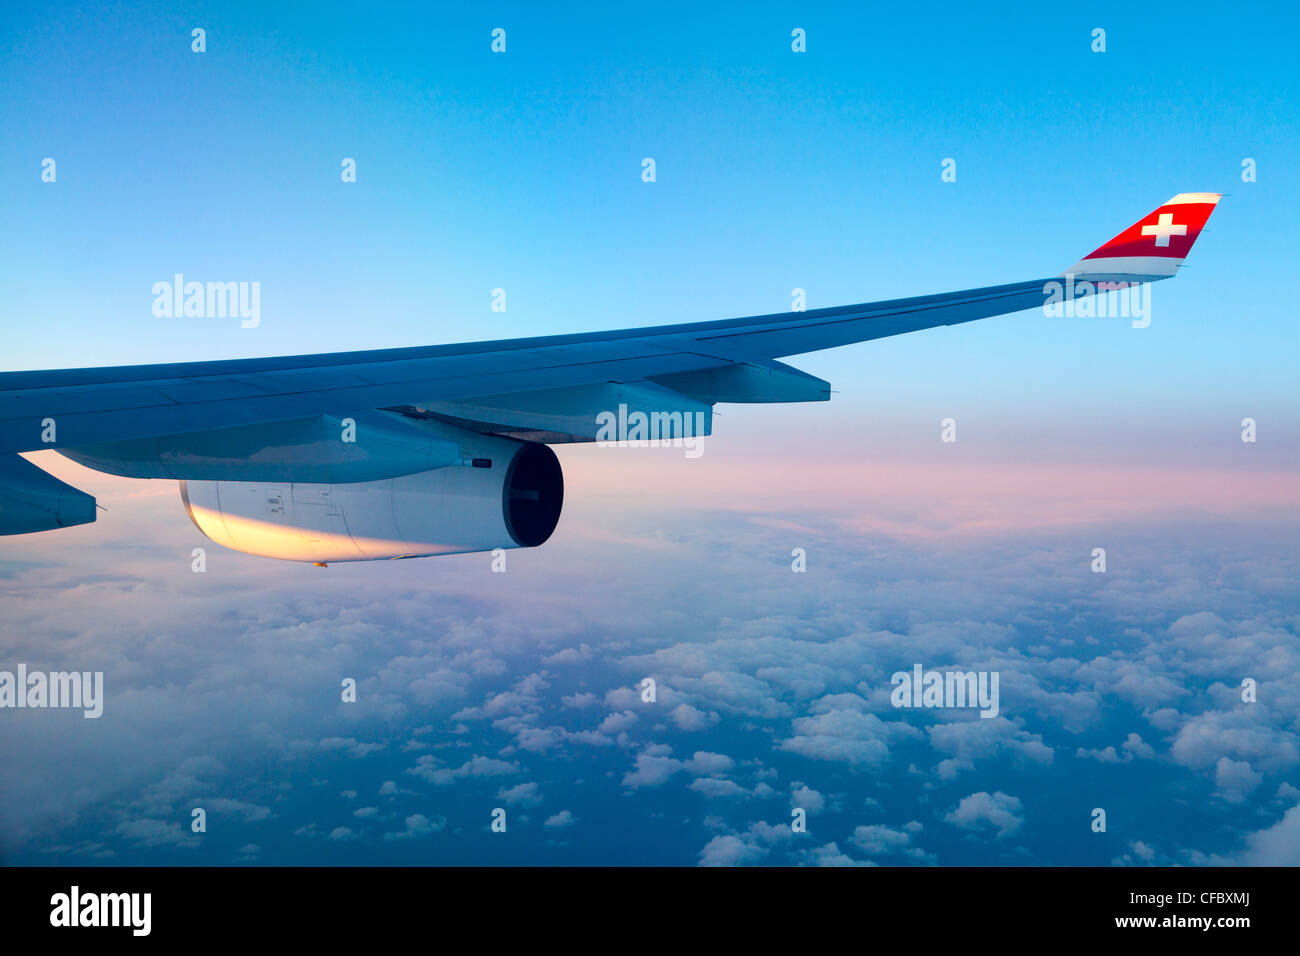 airplane, Swiss, wing, sunset, clouds, cross, engine, flight, fly, engine, plane, sunset, travel, wing, concepts - Stock Image